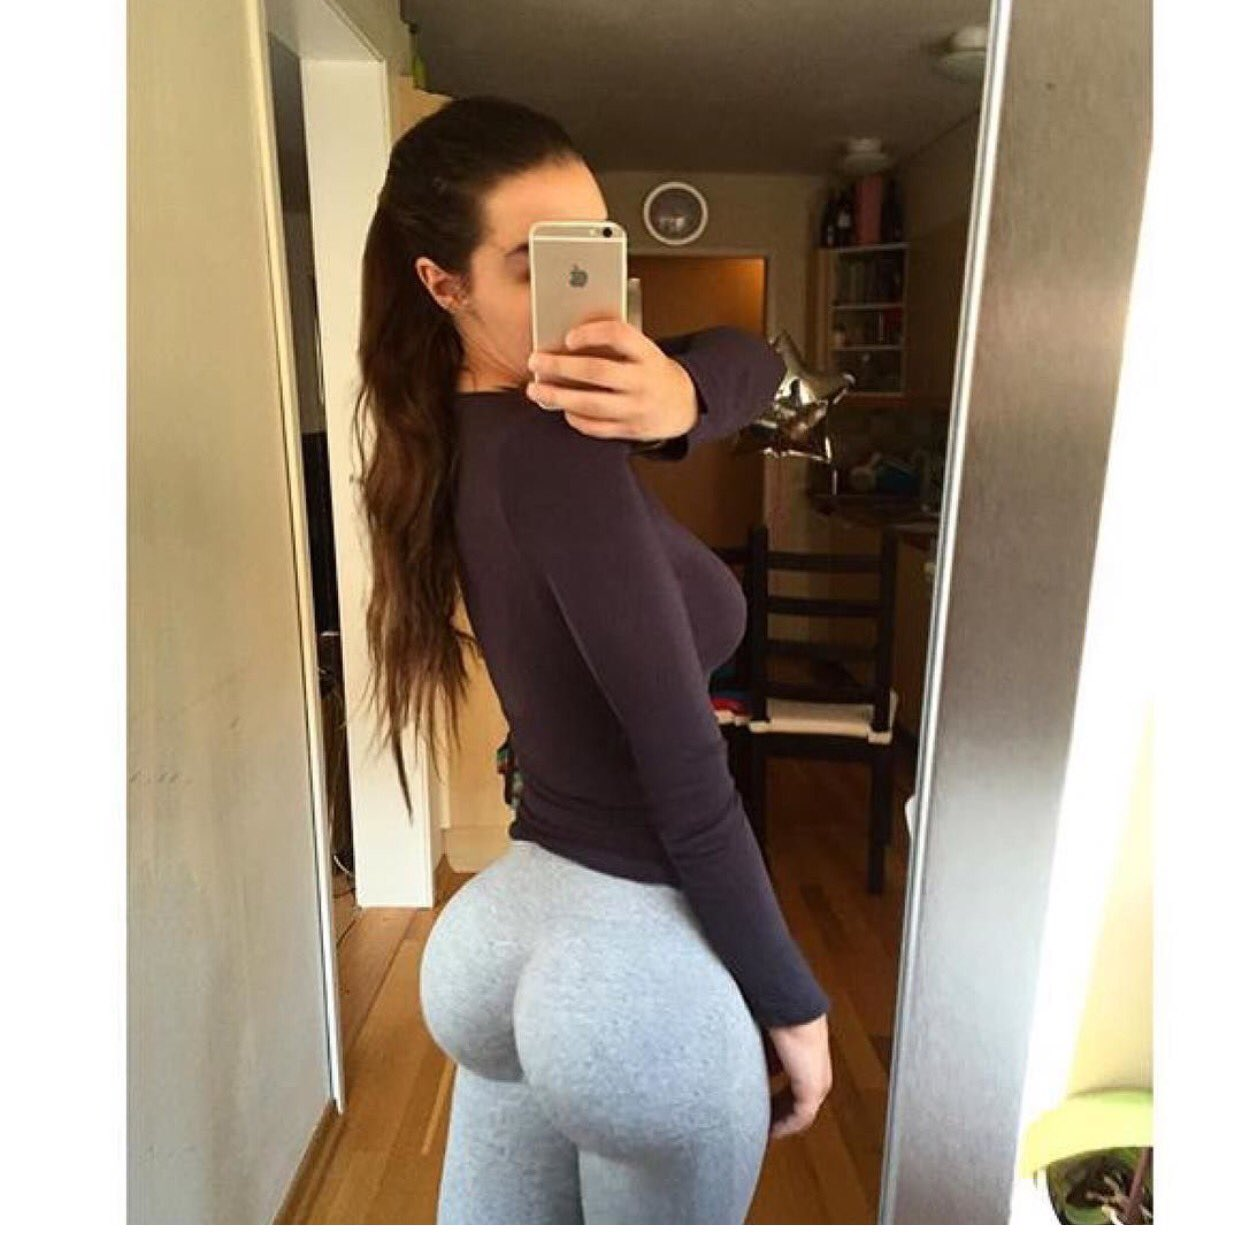 Desirable brunette shows off her nice round butt and firm hooters № 1269256 бесплатно